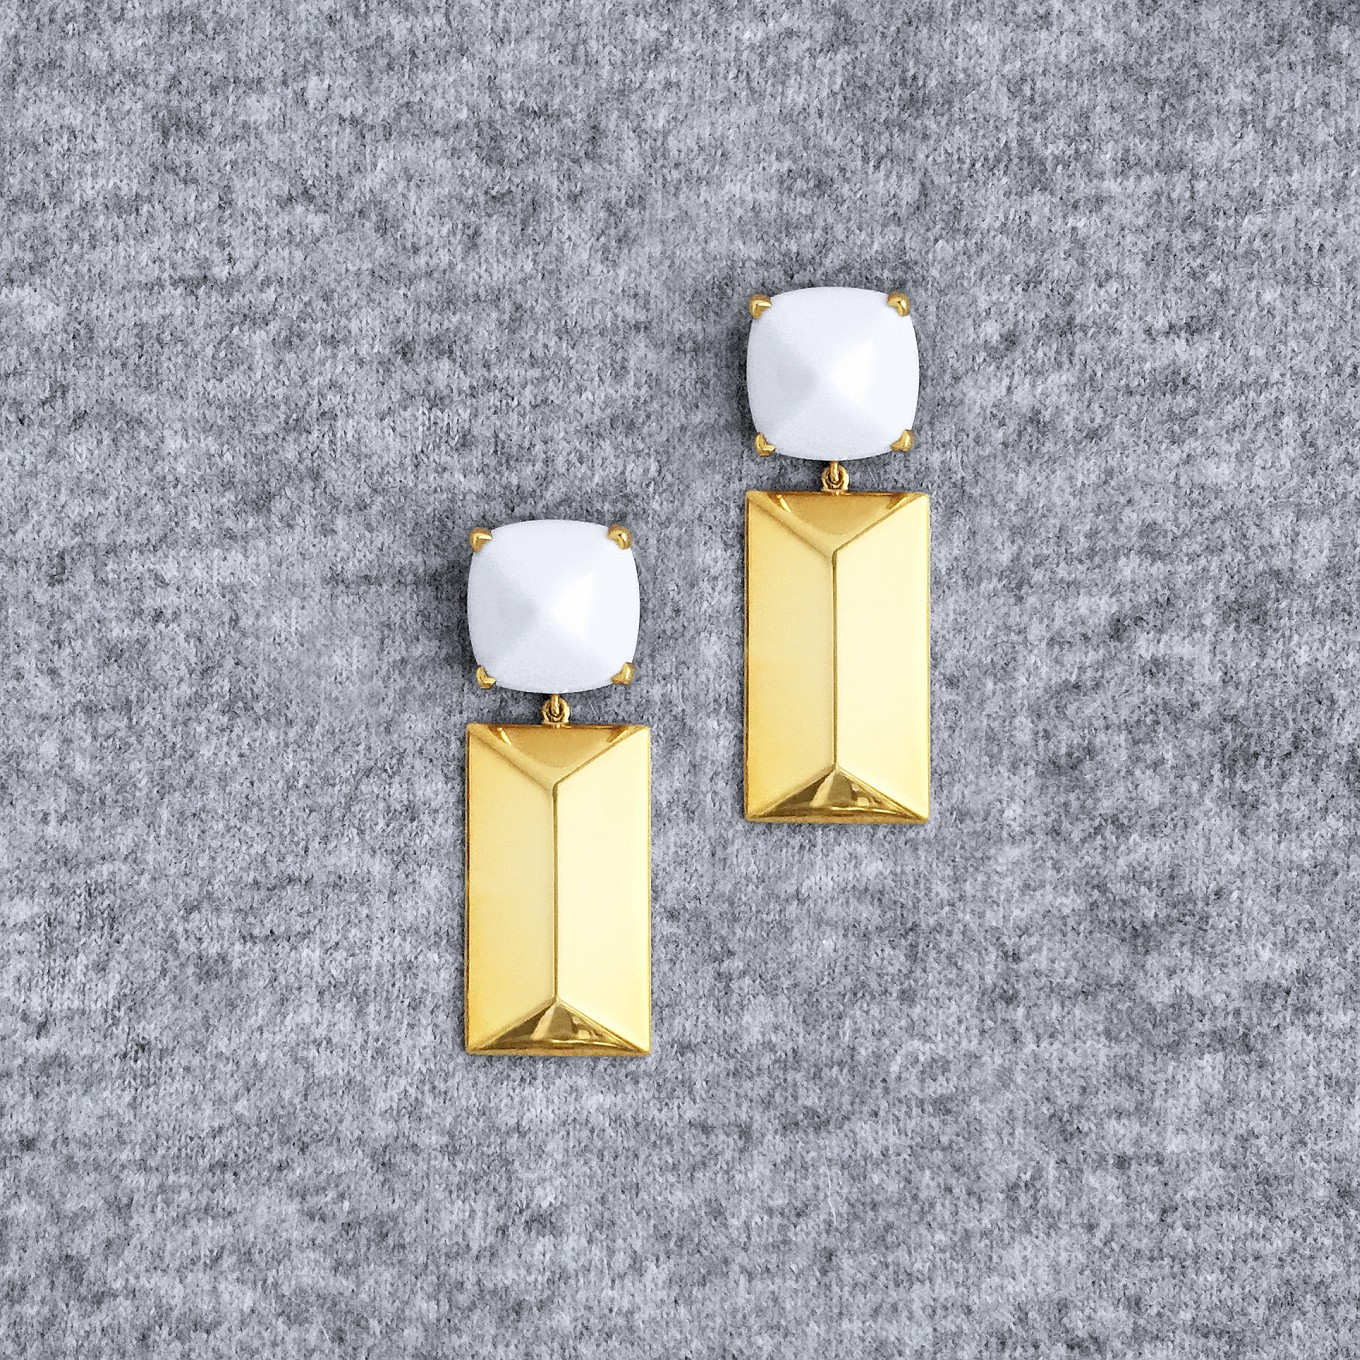 G SERIES COCHOLONG & YELLOW GOLD DOUBLE PYRAMID EARRINGS